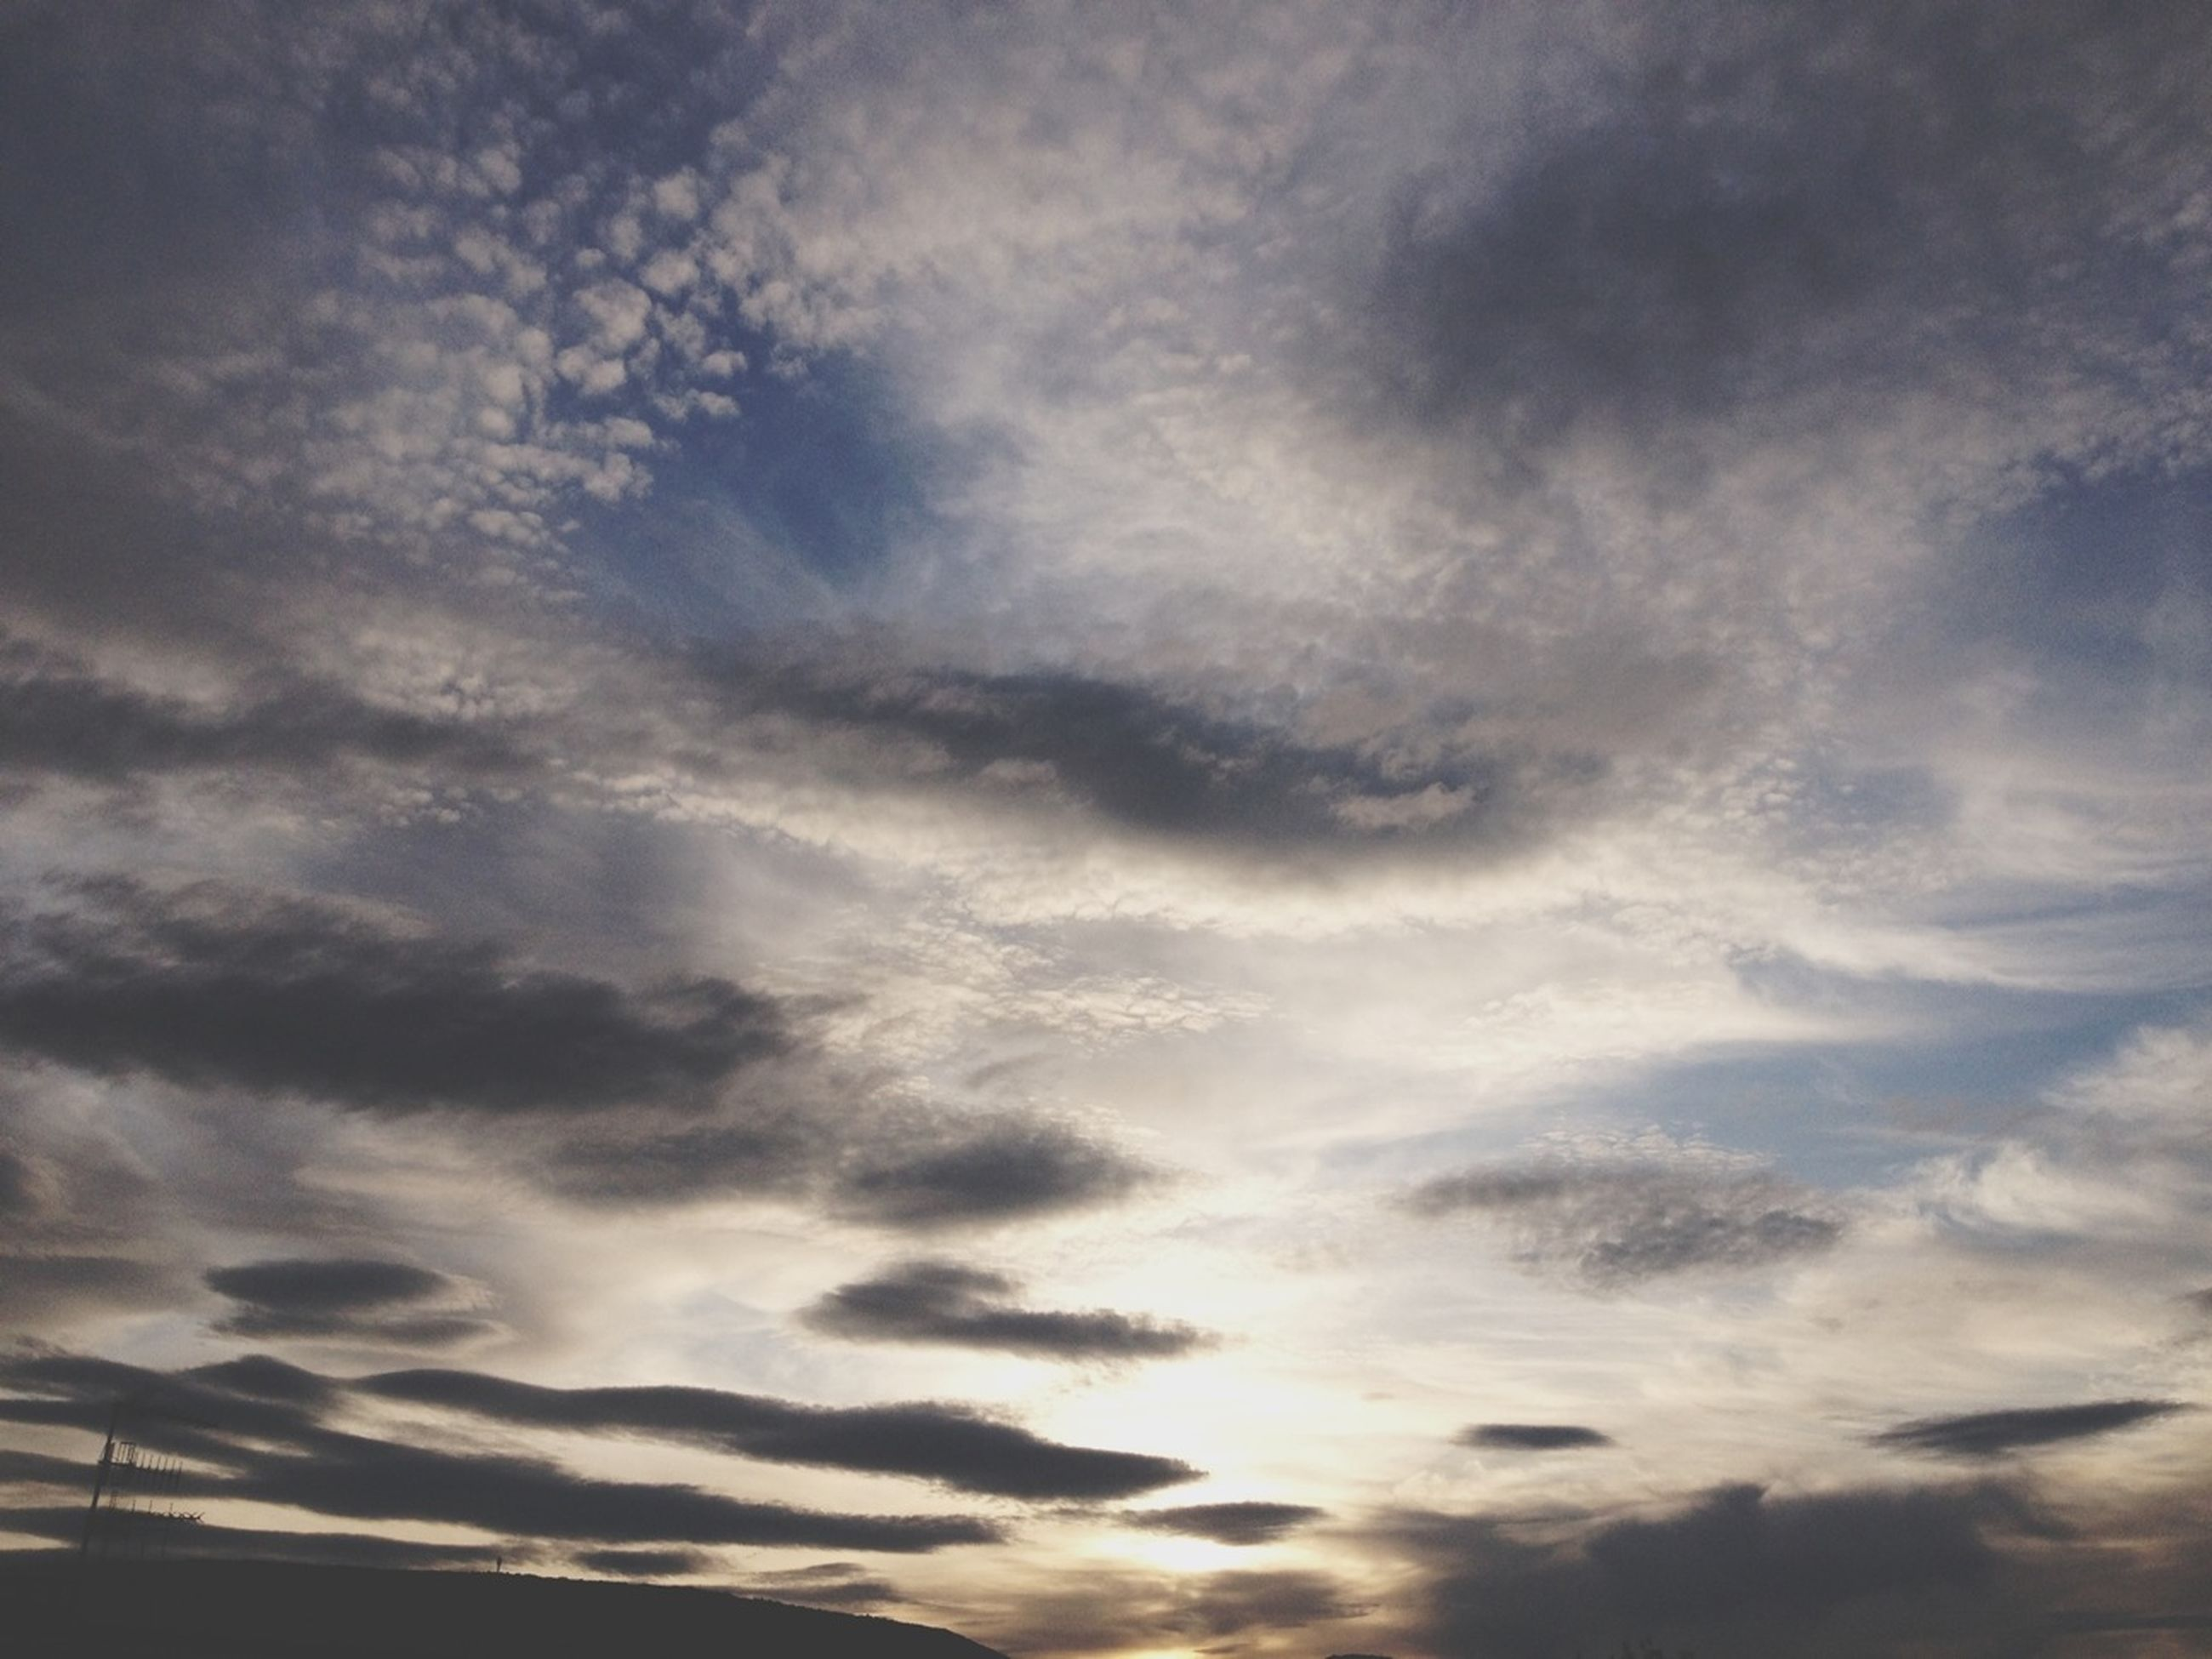 sky, cloud - sky, cloudy, low angle view, tranquility, beauty in nature, scenics, tranquil scene, cloudscape, nature, weather, sky only, cloud, overcast, idyllic, backgrounds, sunset, dramatic sky, outdoors, majestic